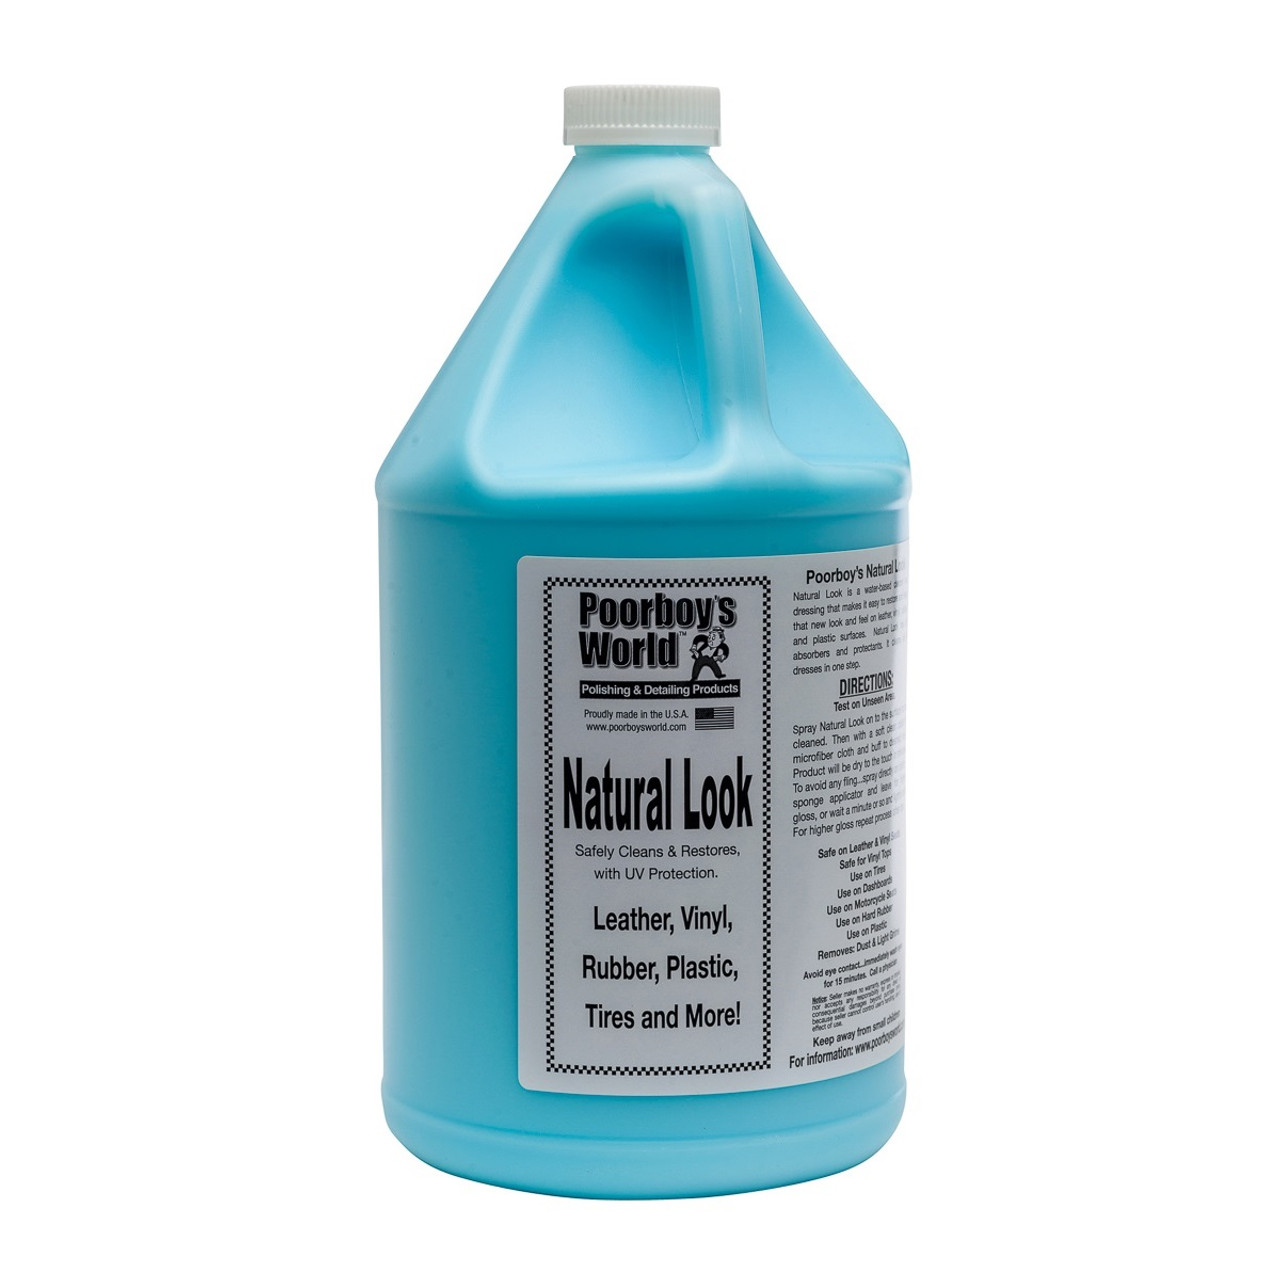 Poorboy's World Natural Look Gallon